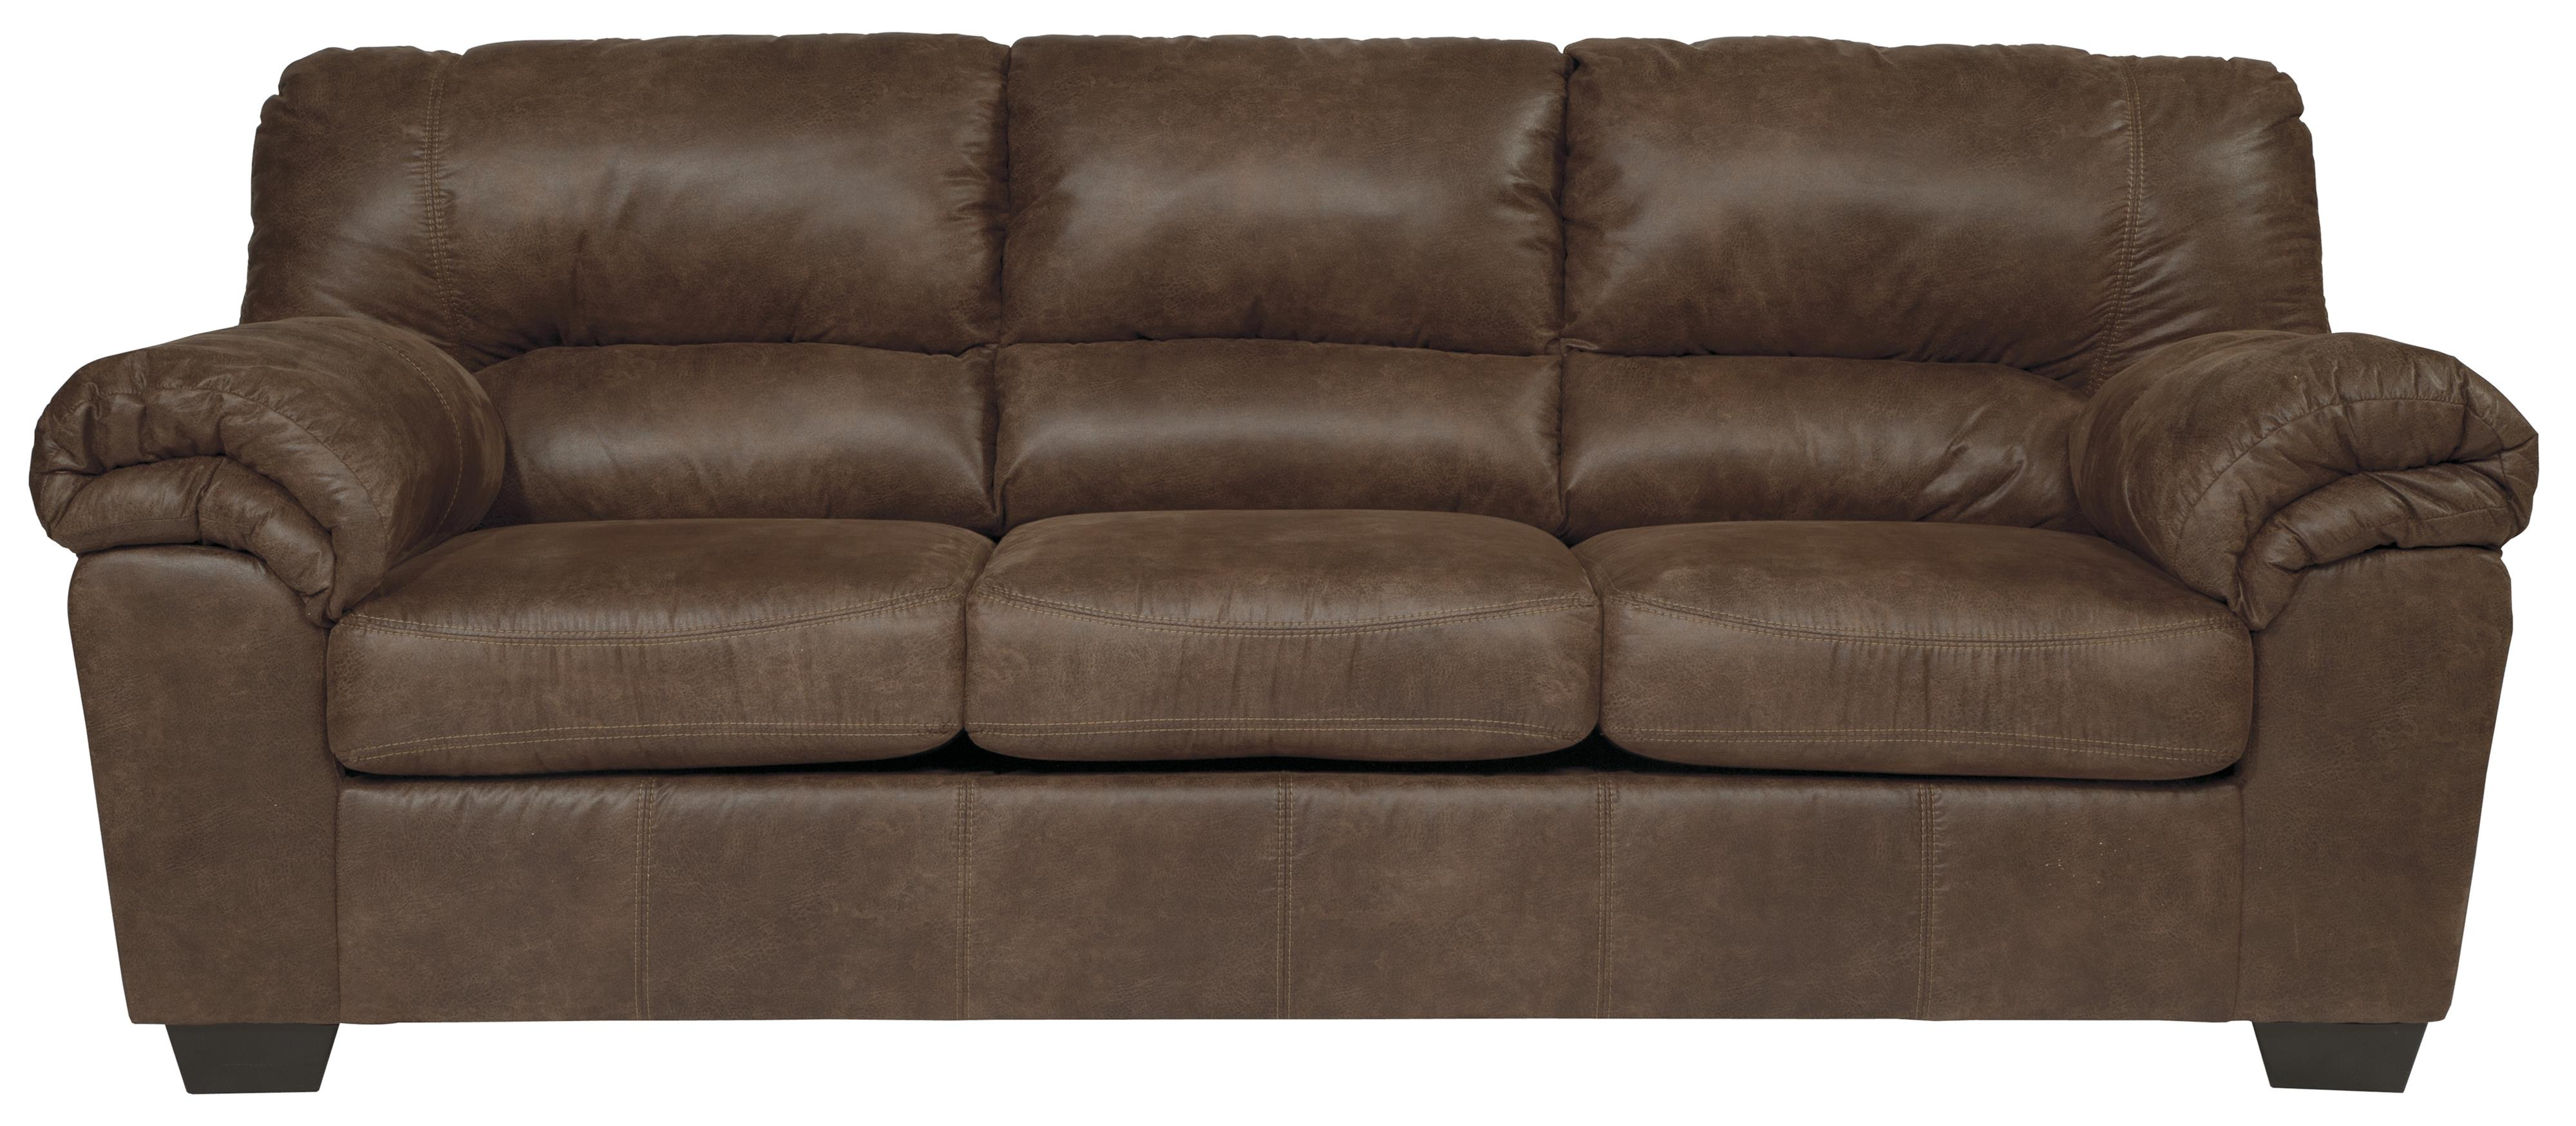 Casual faux leather full sofa sleeper by signature design for Casual couch